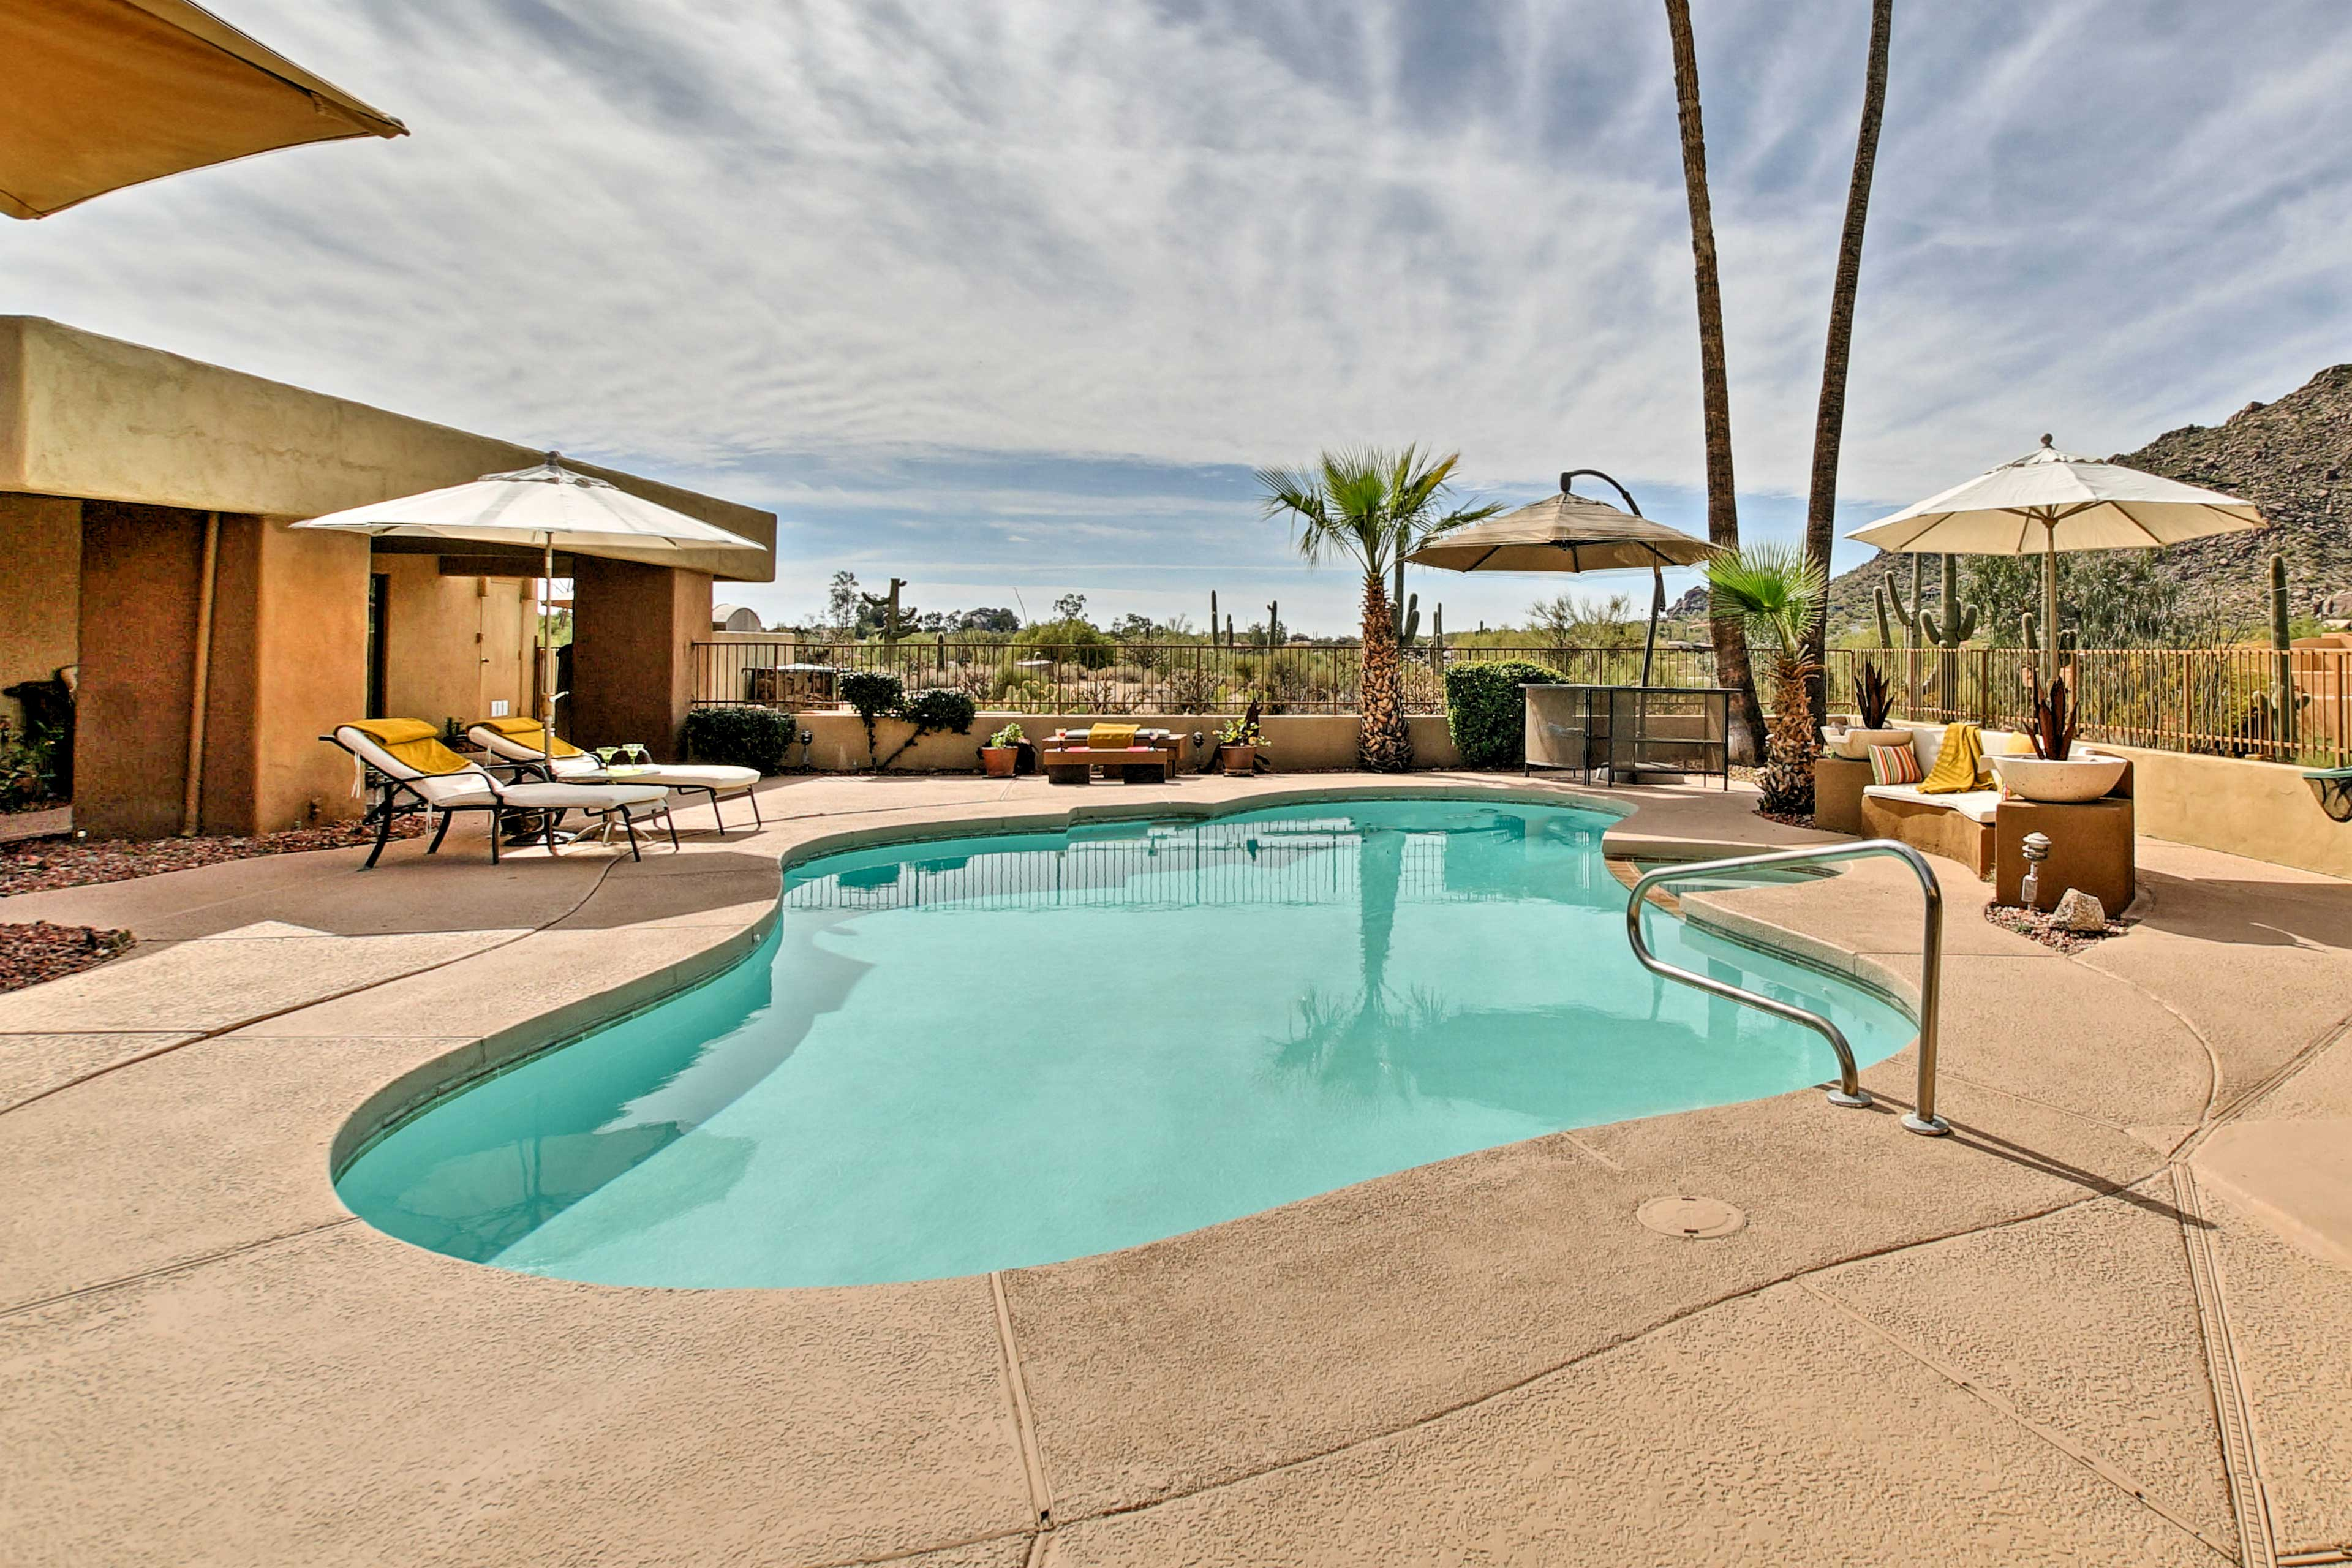 Take a dip in the oasis pool.